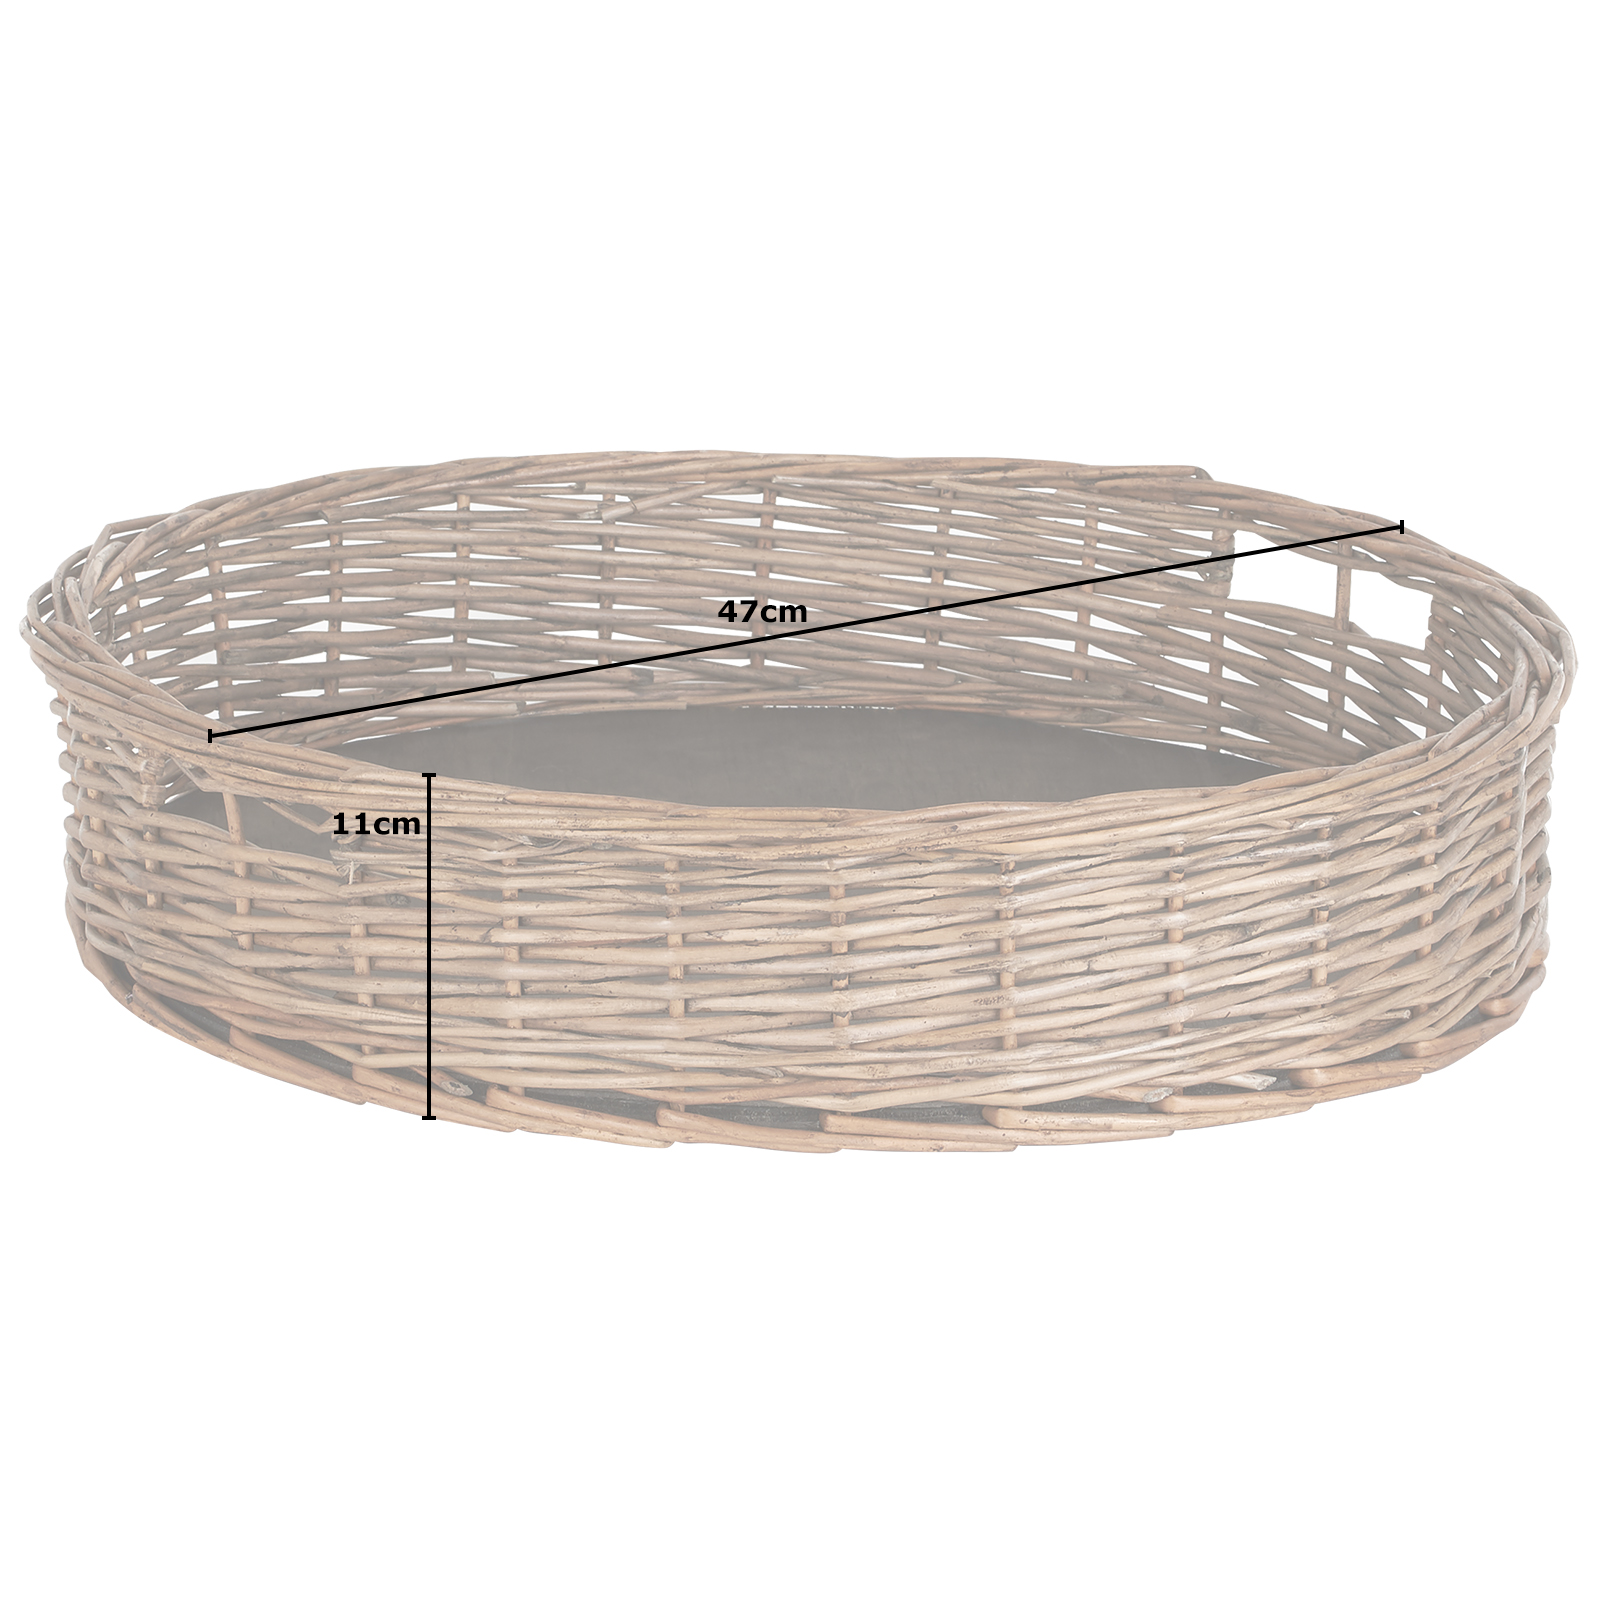 Hartleys-Round-Wicker-Serving-Tray-Decorative-Wooden-Platter-Coffee-Table-Decor thumbnail 22